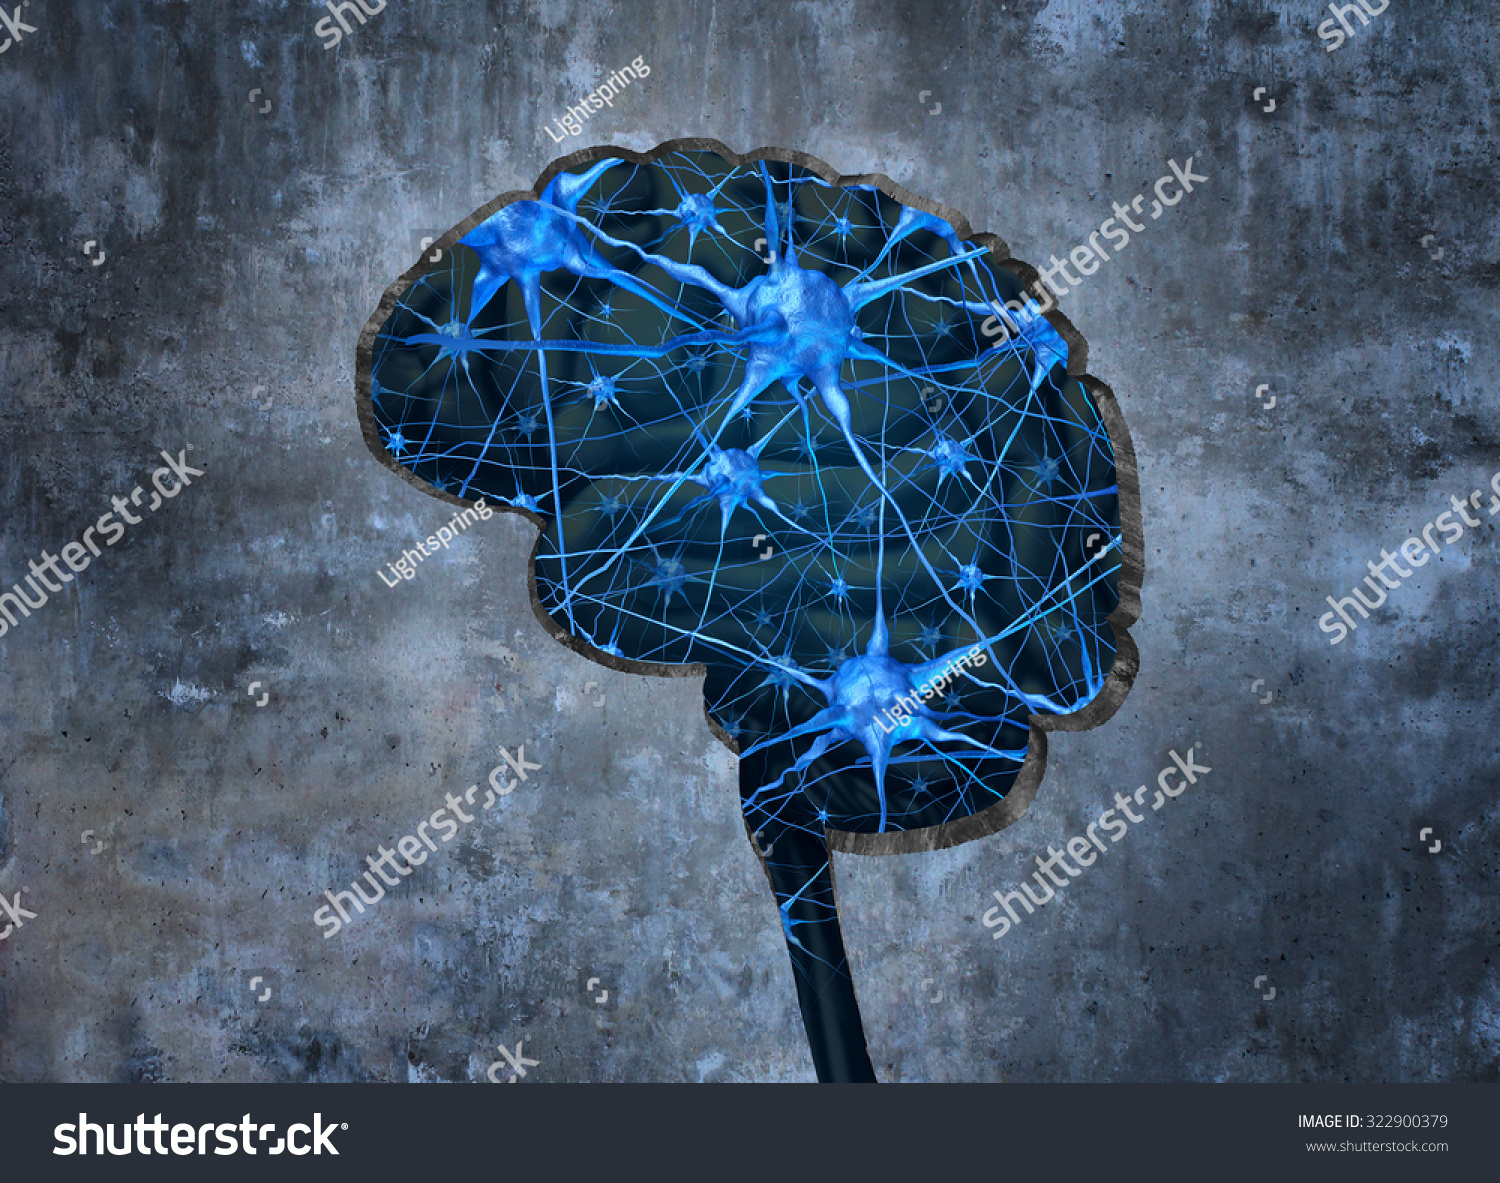 an analysis of the human brain in neurology Supported by recent human neuroimaging studies, the insula is re-emerging as an important brain area not only in the physiological understanding of the brain, but.